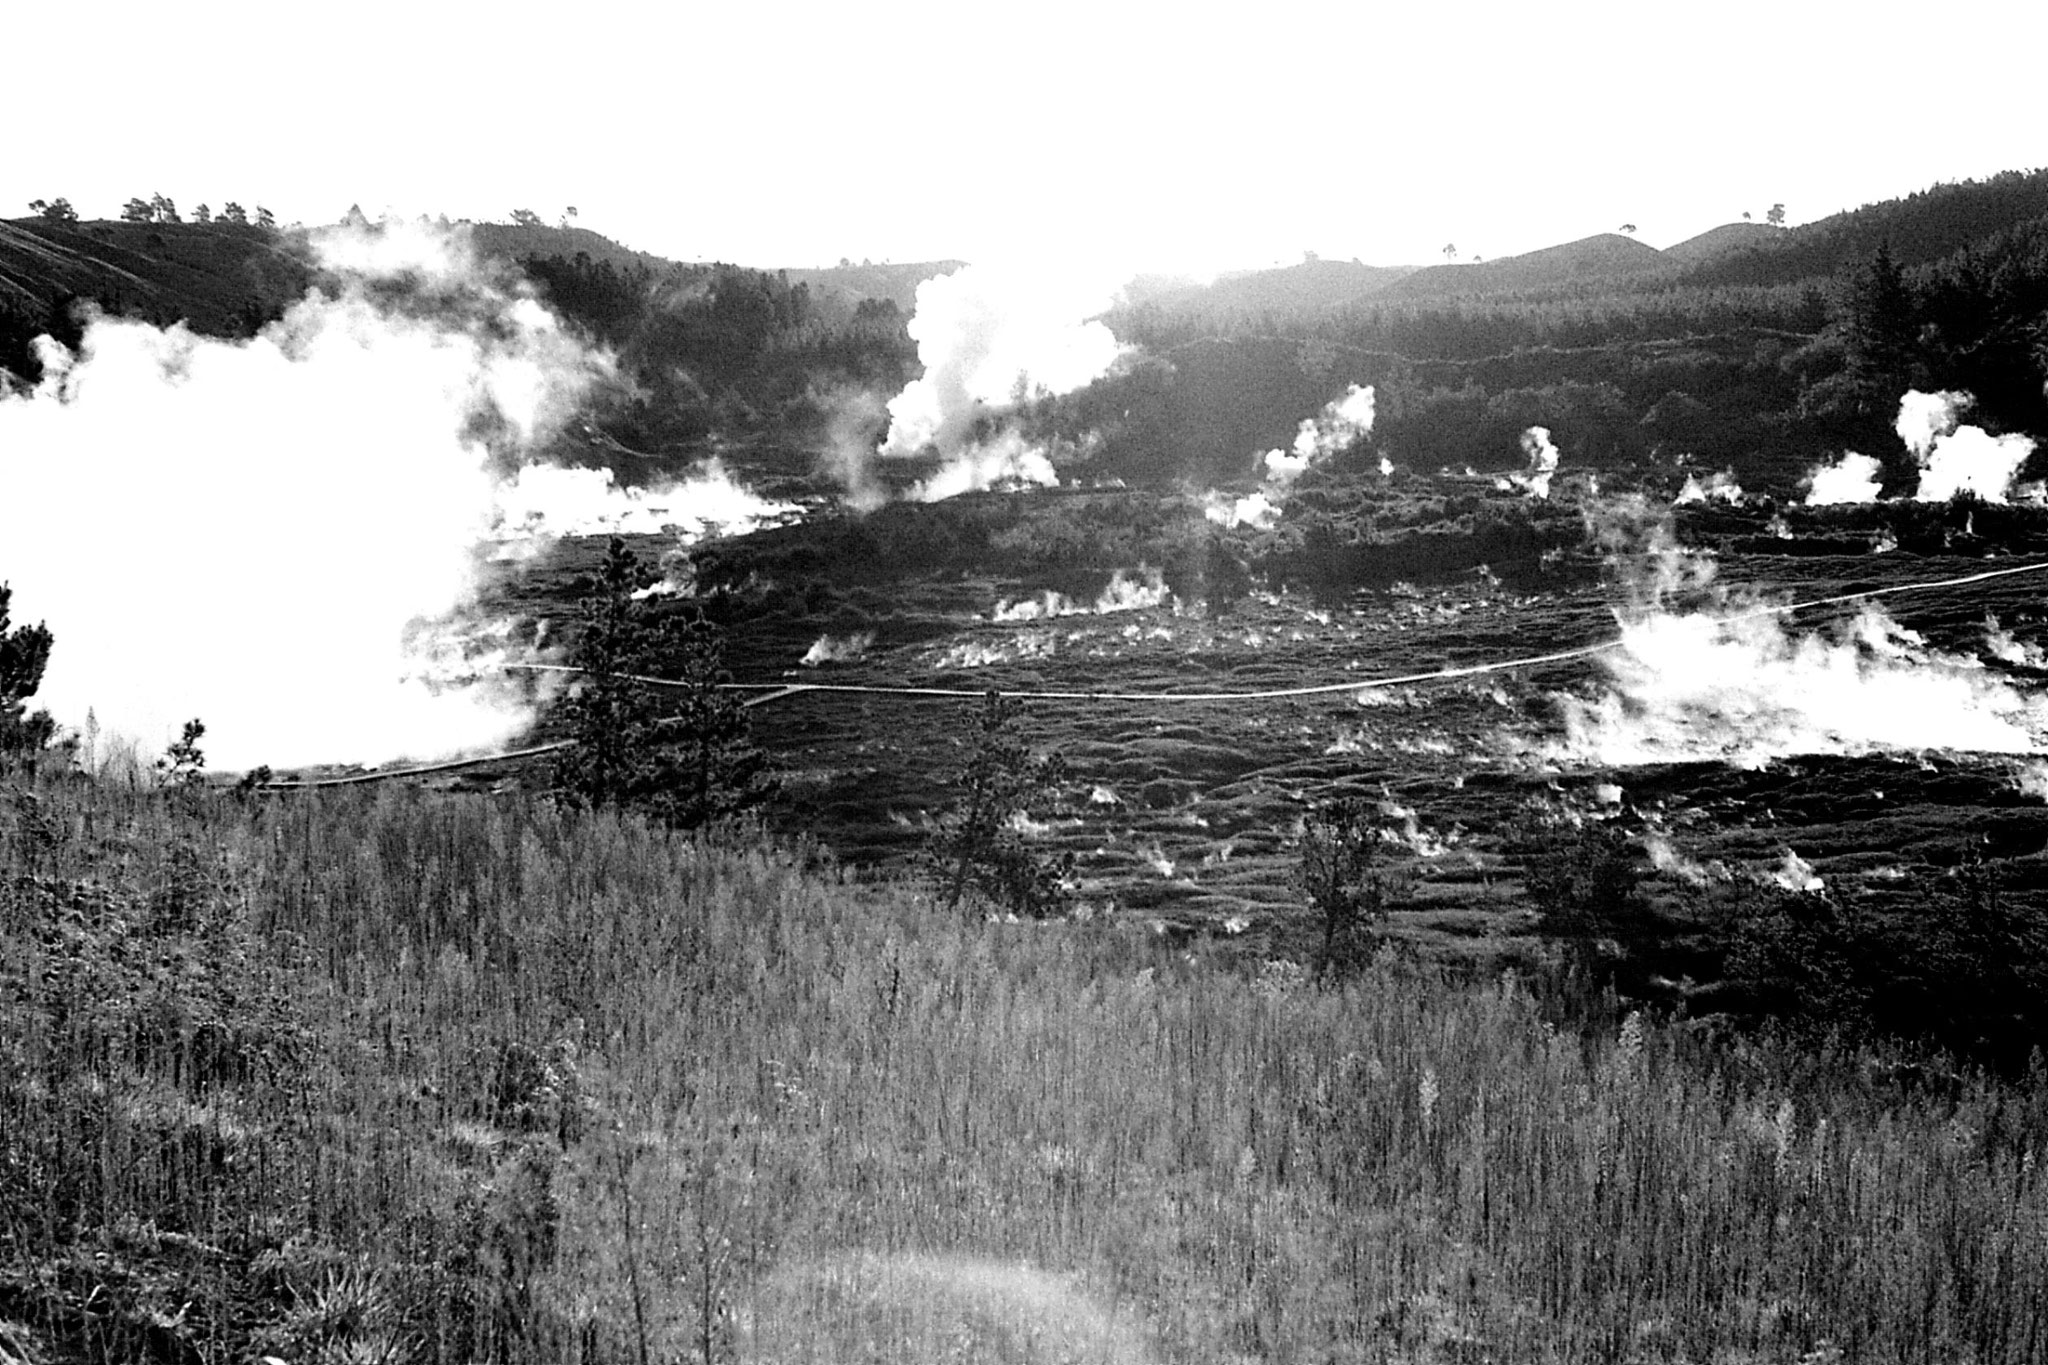 30/8/1990: 4: craters of the moon n. of Taupo